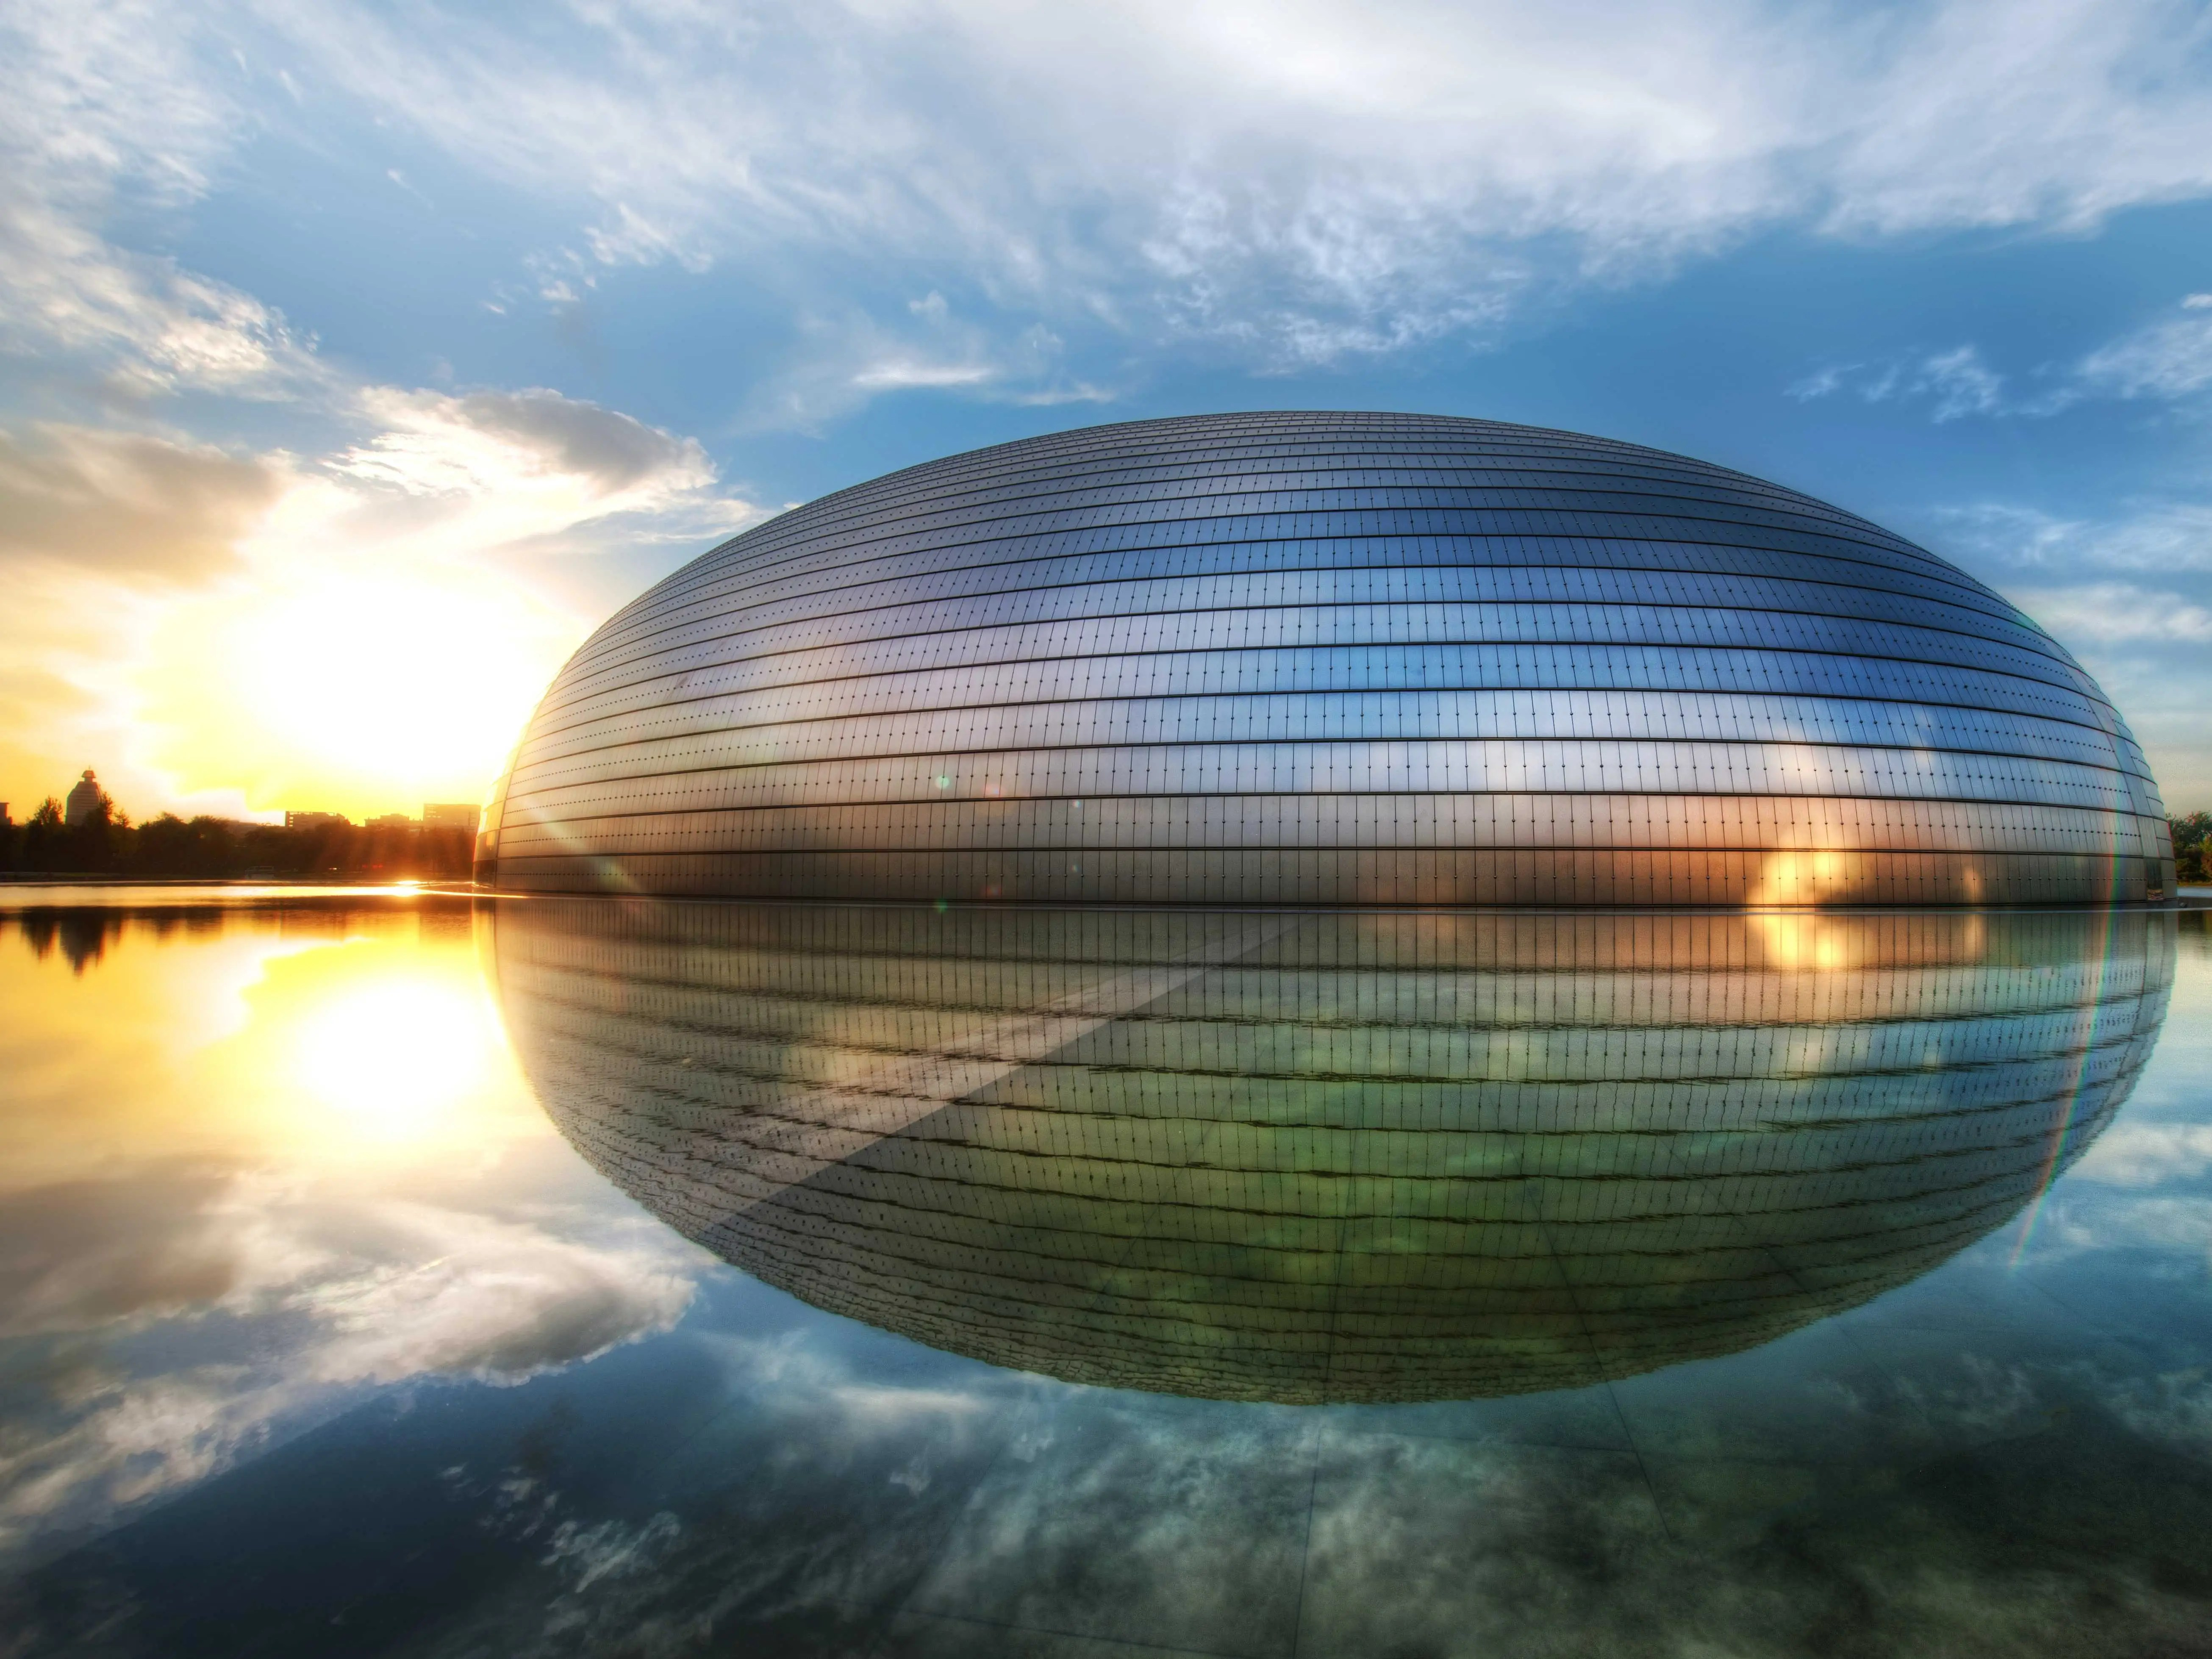 You can see why the National Center for the Performing Arts in Beijing gets its nickname, 'The Egg.'